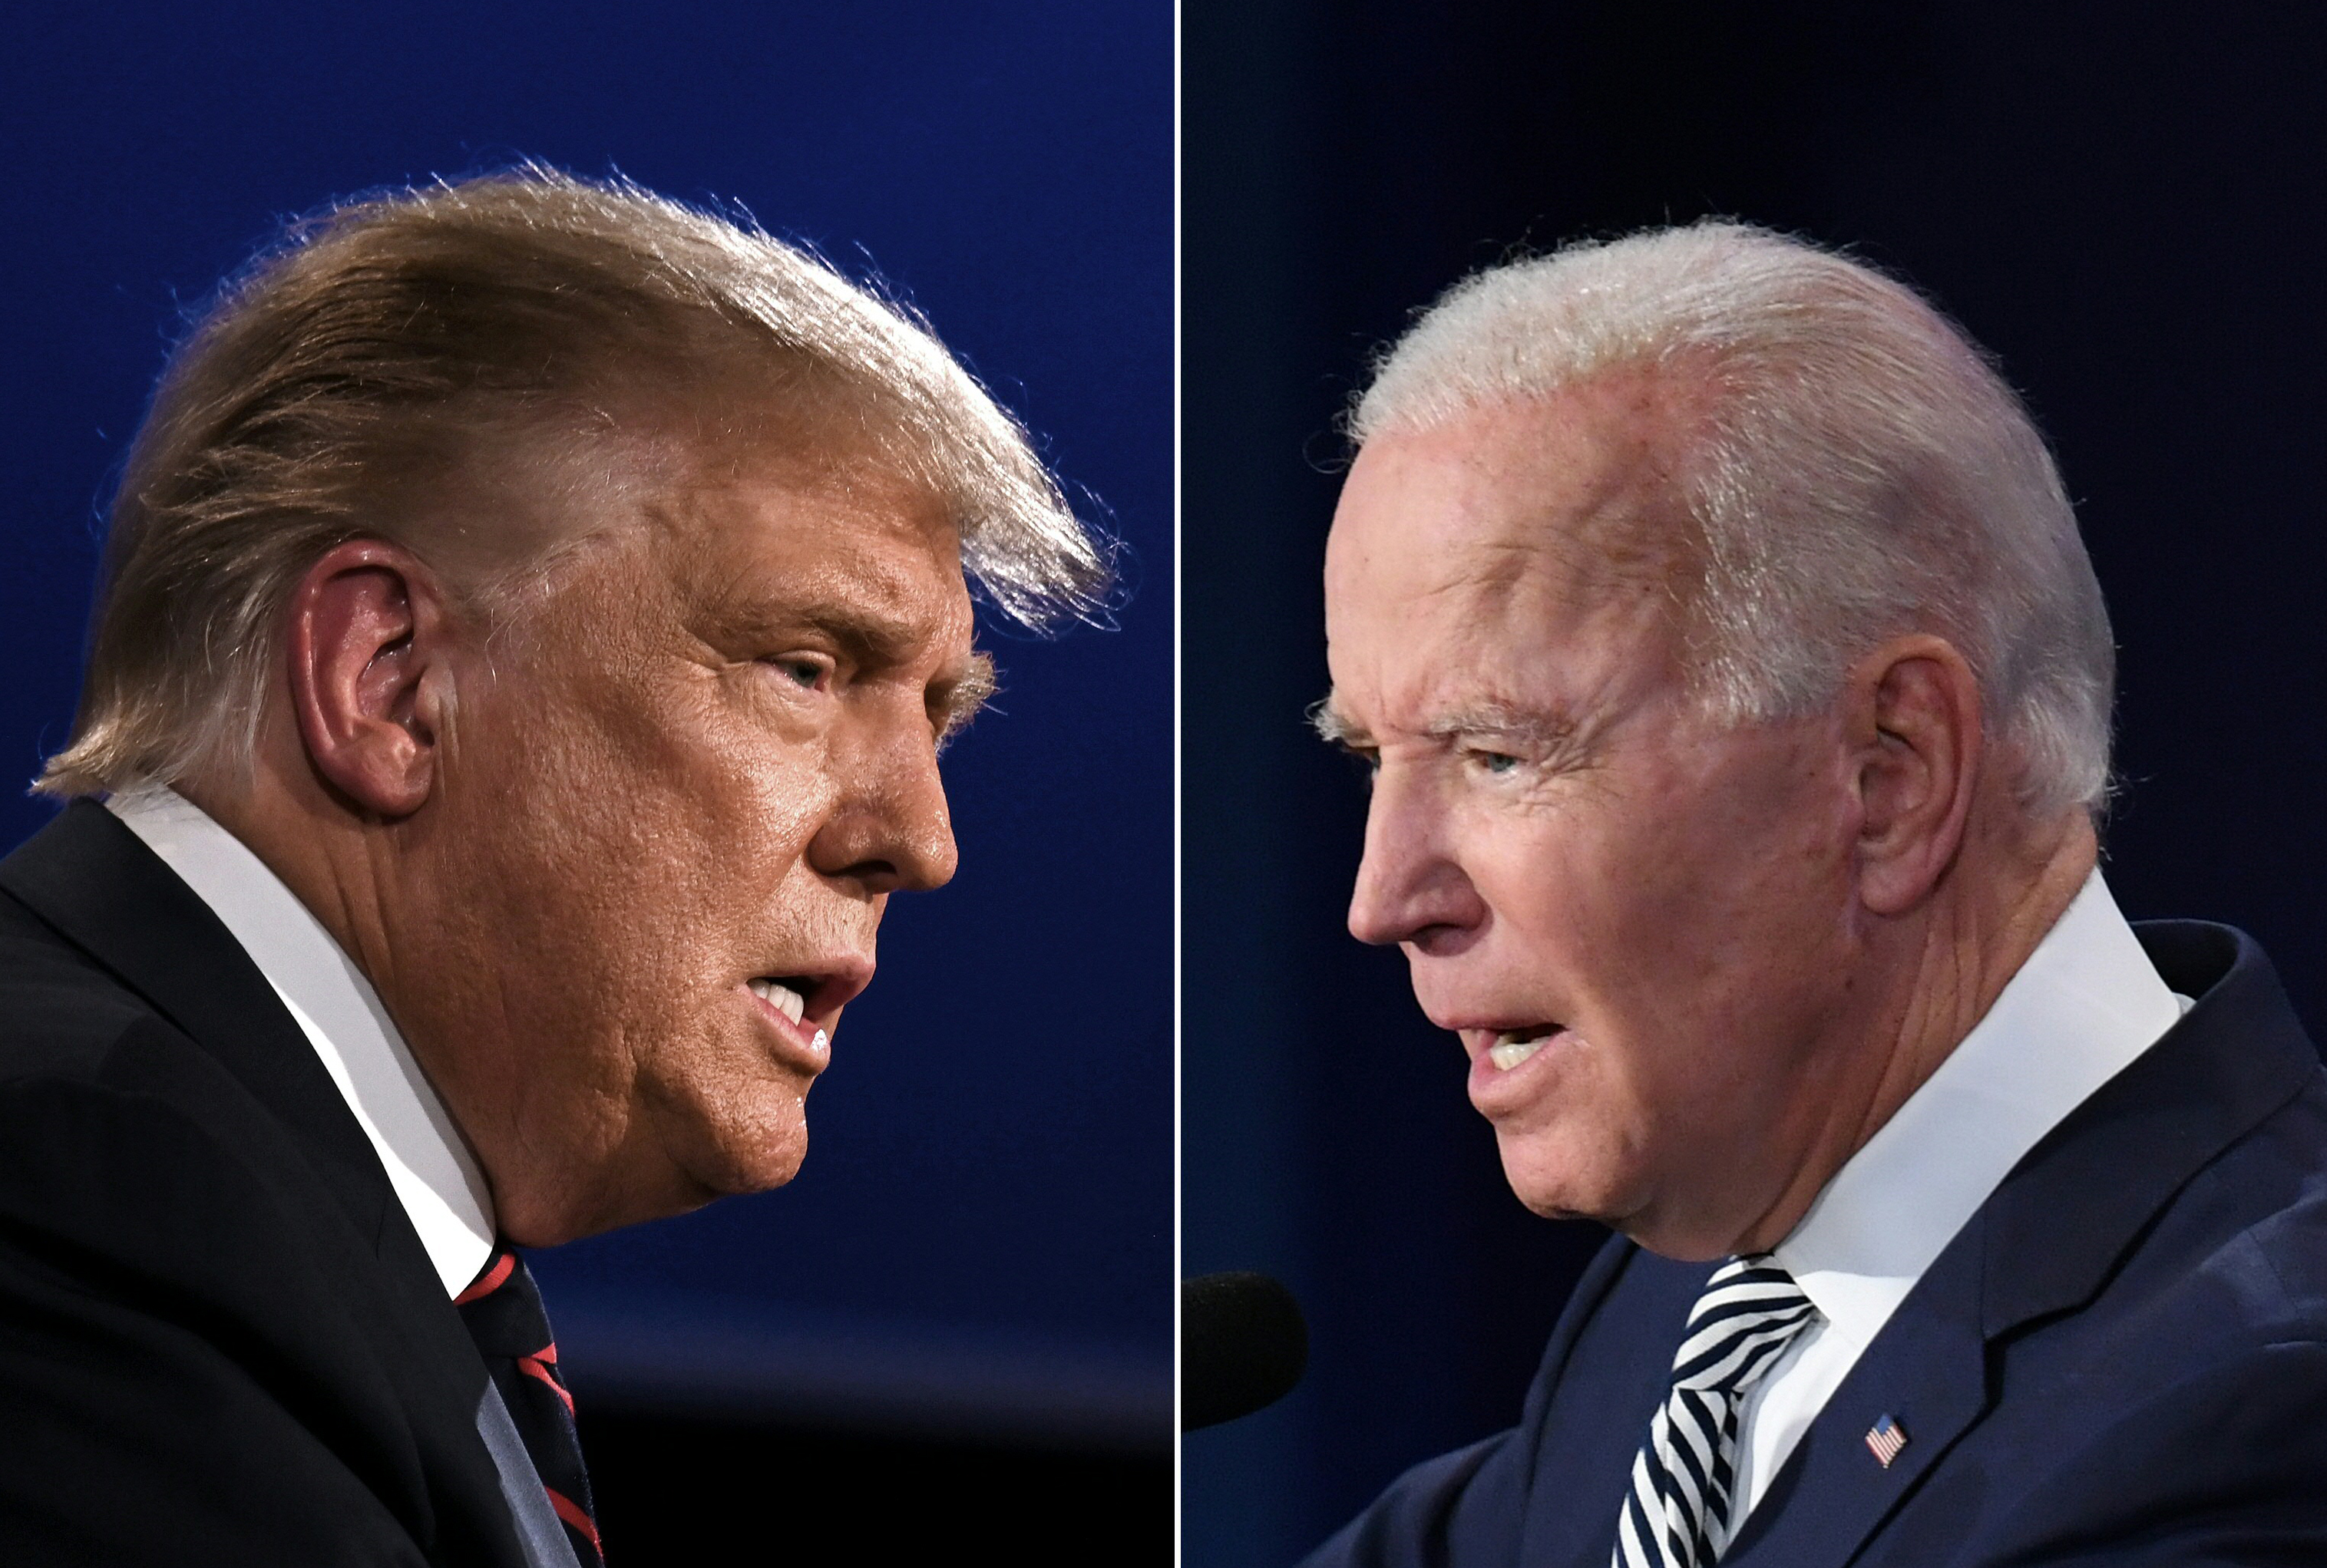 Biden leads Trump in key swing states Michigan, Florida and Arizona nearly a month from election